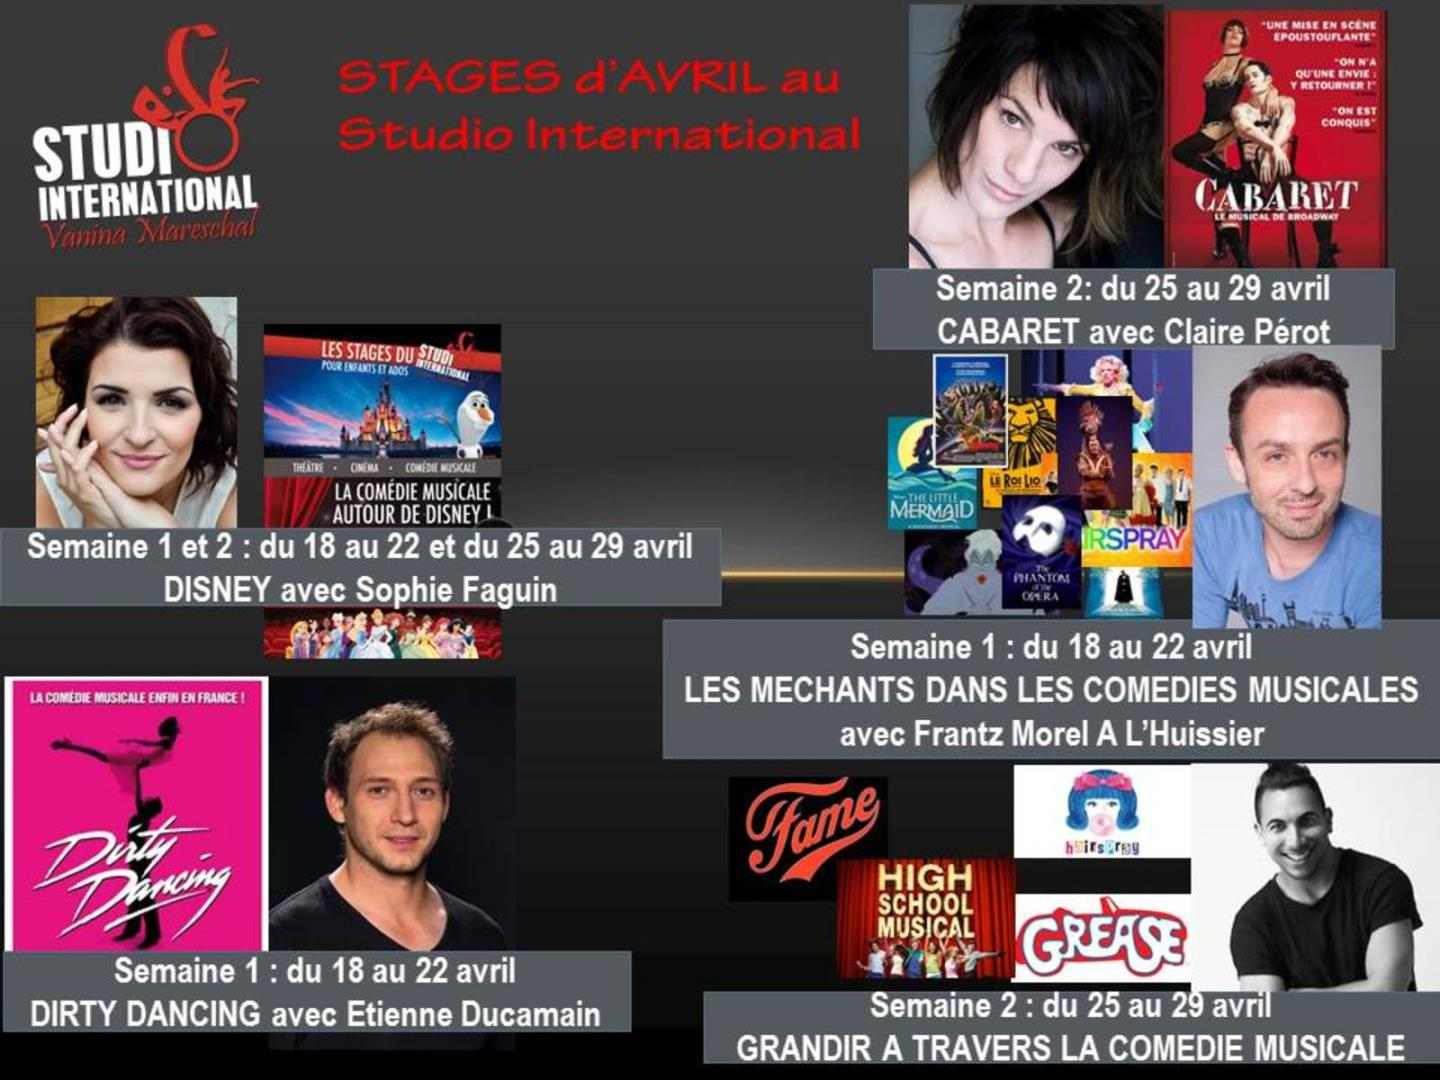 Stages de comédie musicale vacances d'Avril - STUDIO International Vanina Mareschal